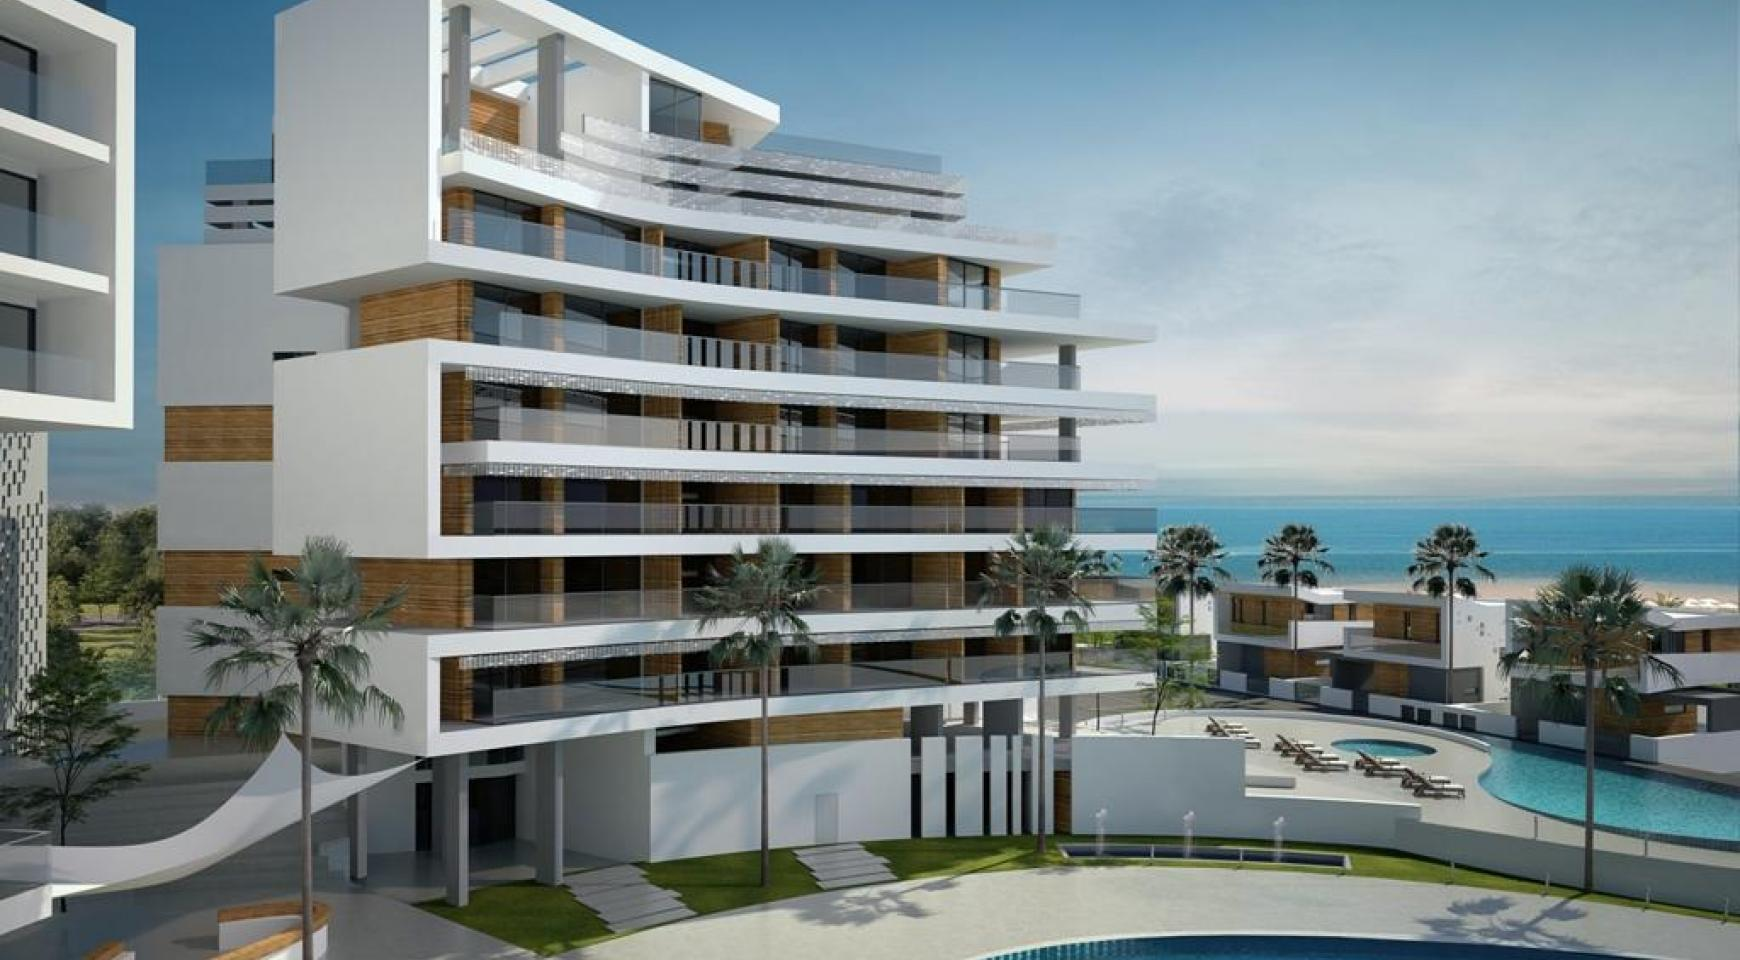 Contemporary 2 Bedroom Apartment in a New Complex by the Sea - 8